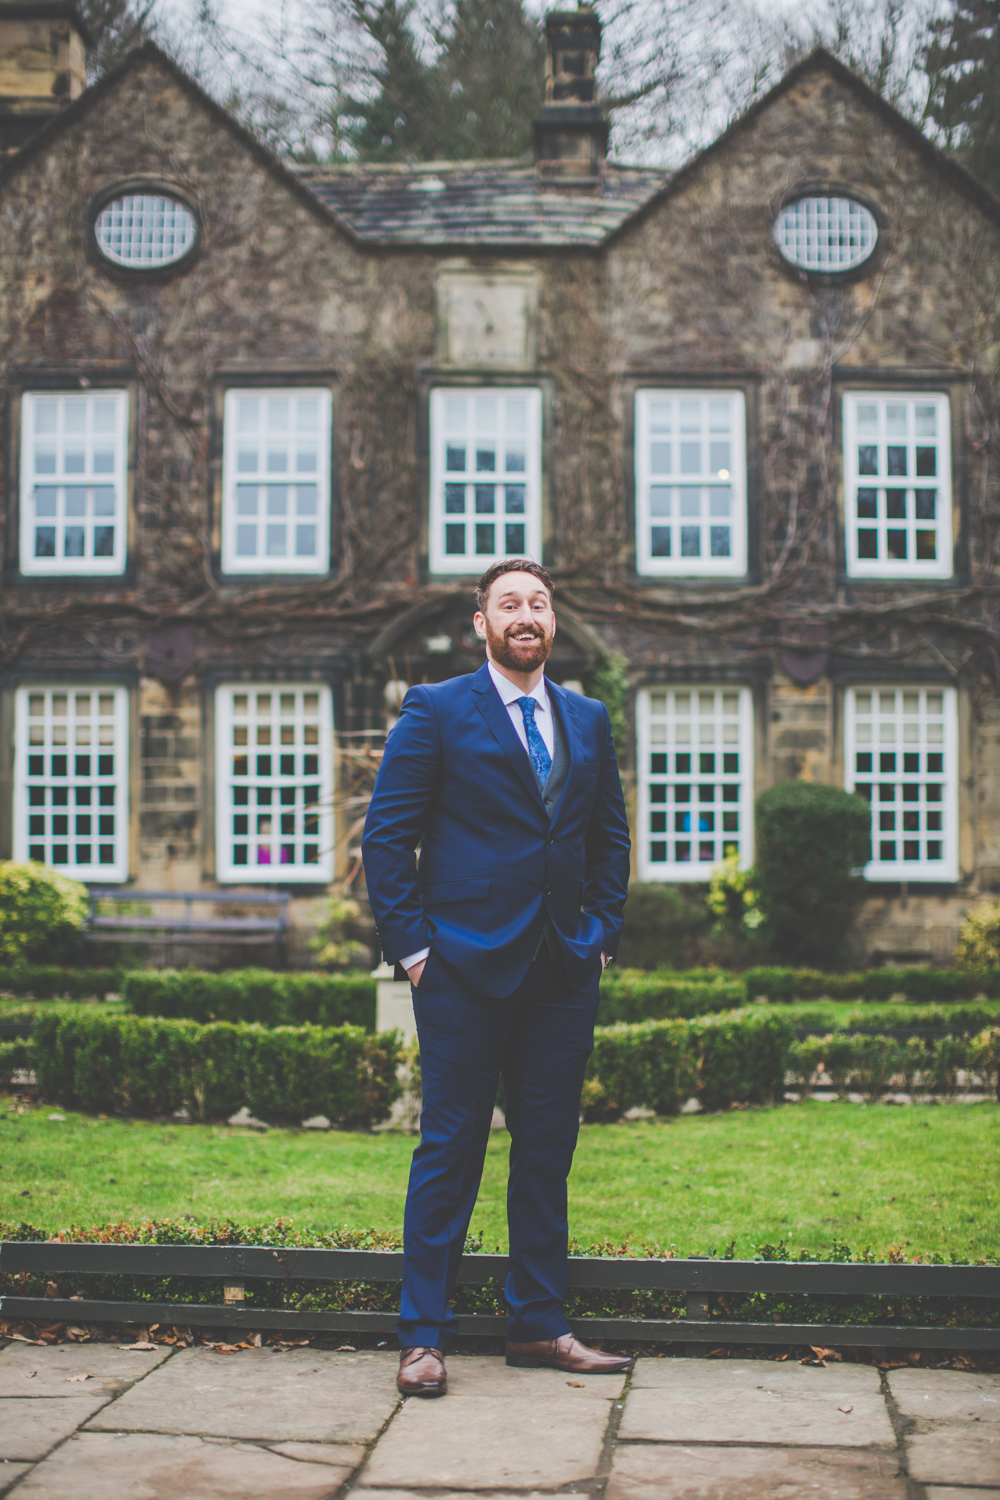 whitley hall sheffield quirky wedding photography-11.jpg